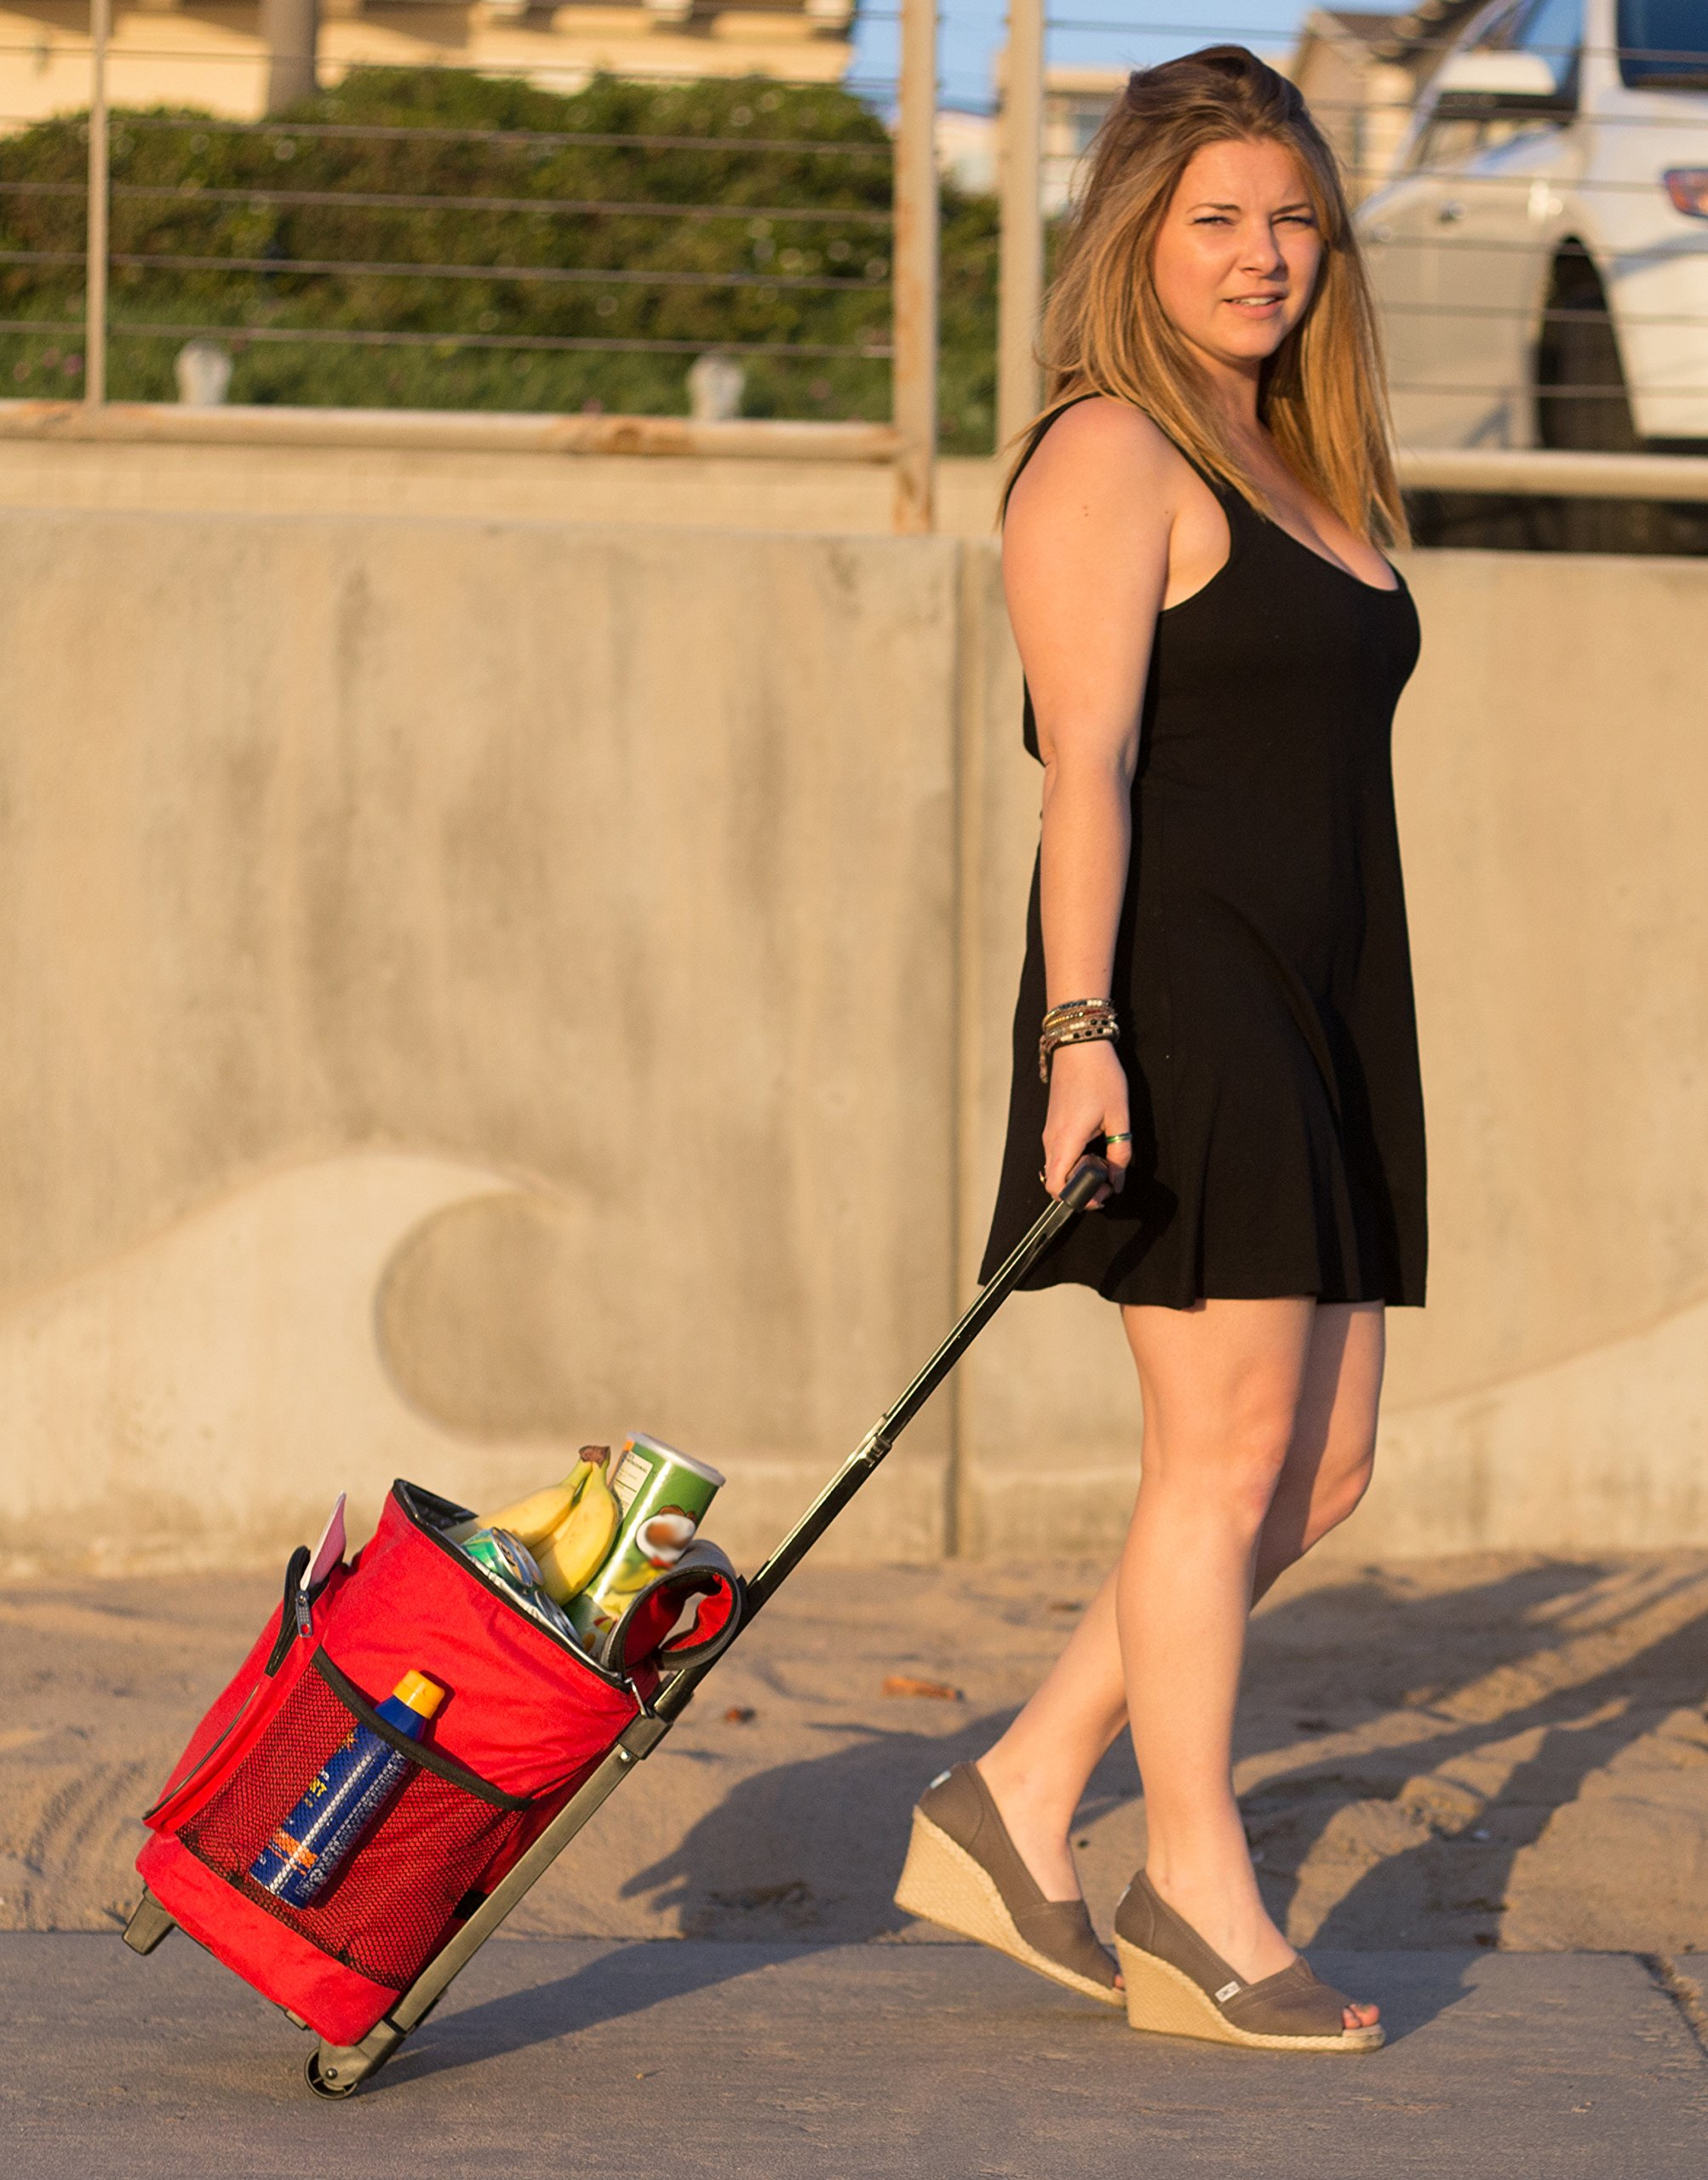 dbest products Ultra Compact Smart Cart,Red Insulated Cooler by dbest products (Image #2)